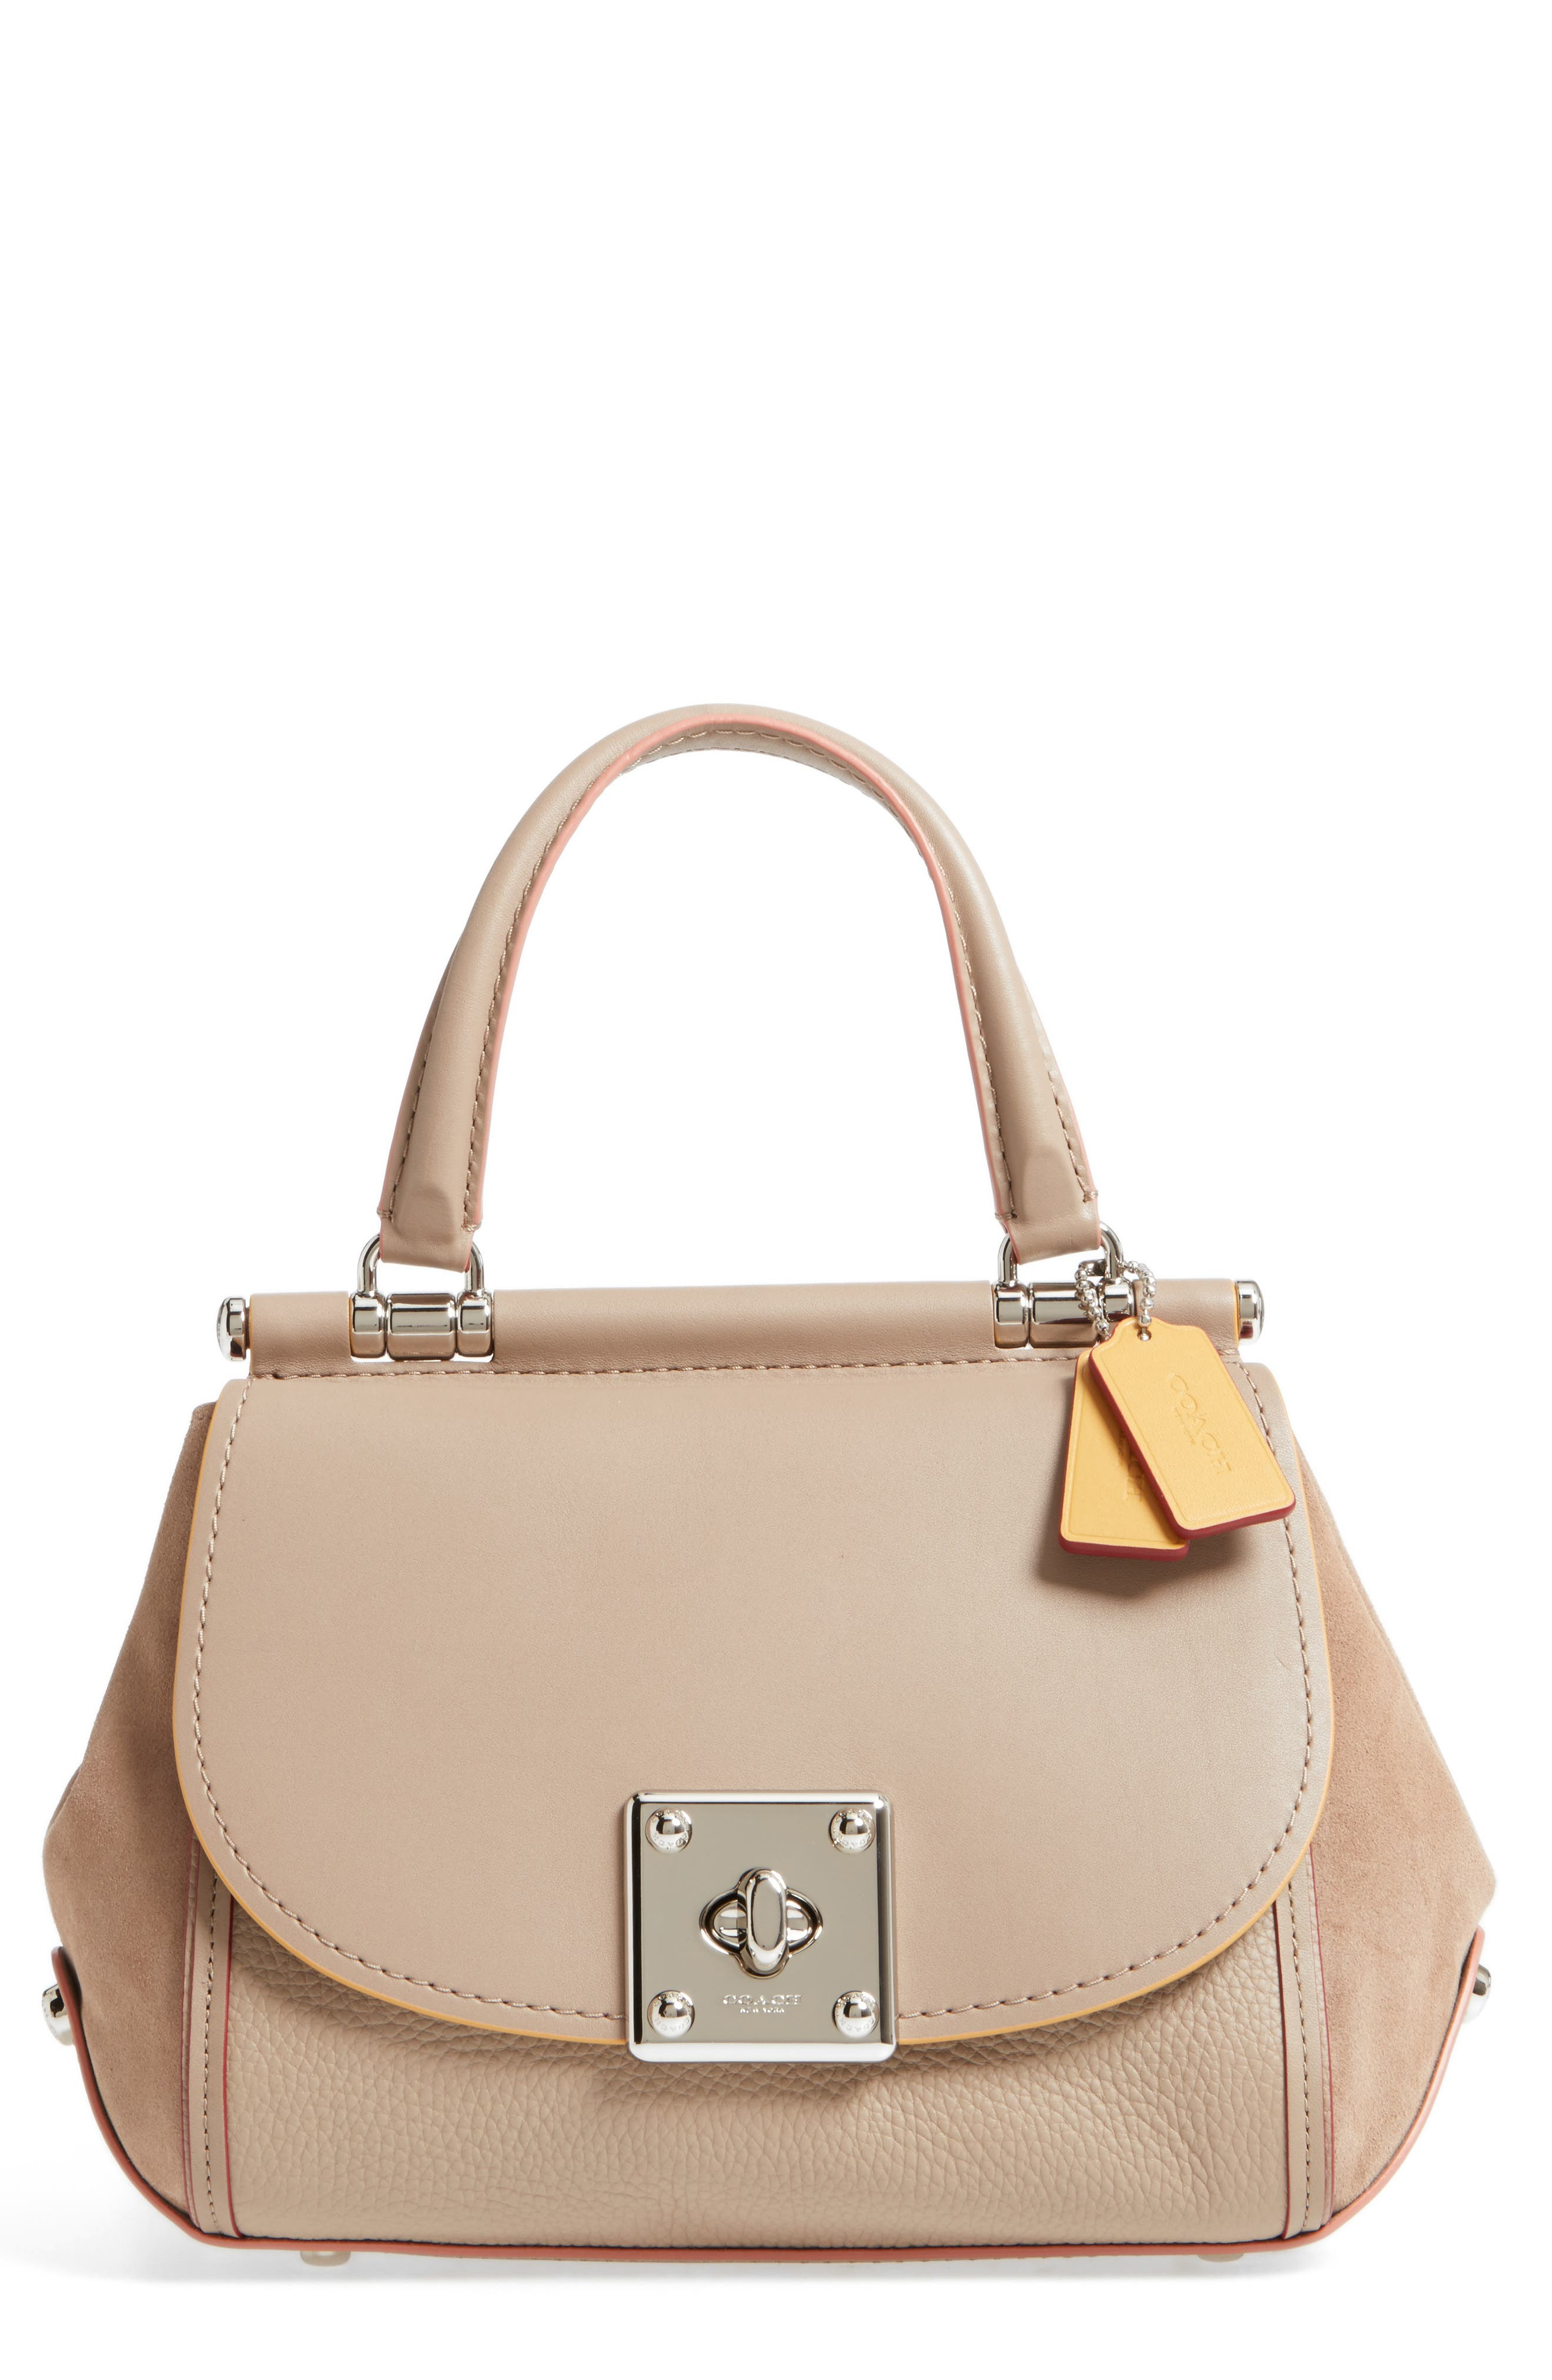 COACH Edgestain Mixed Leather Top Handle Satchel